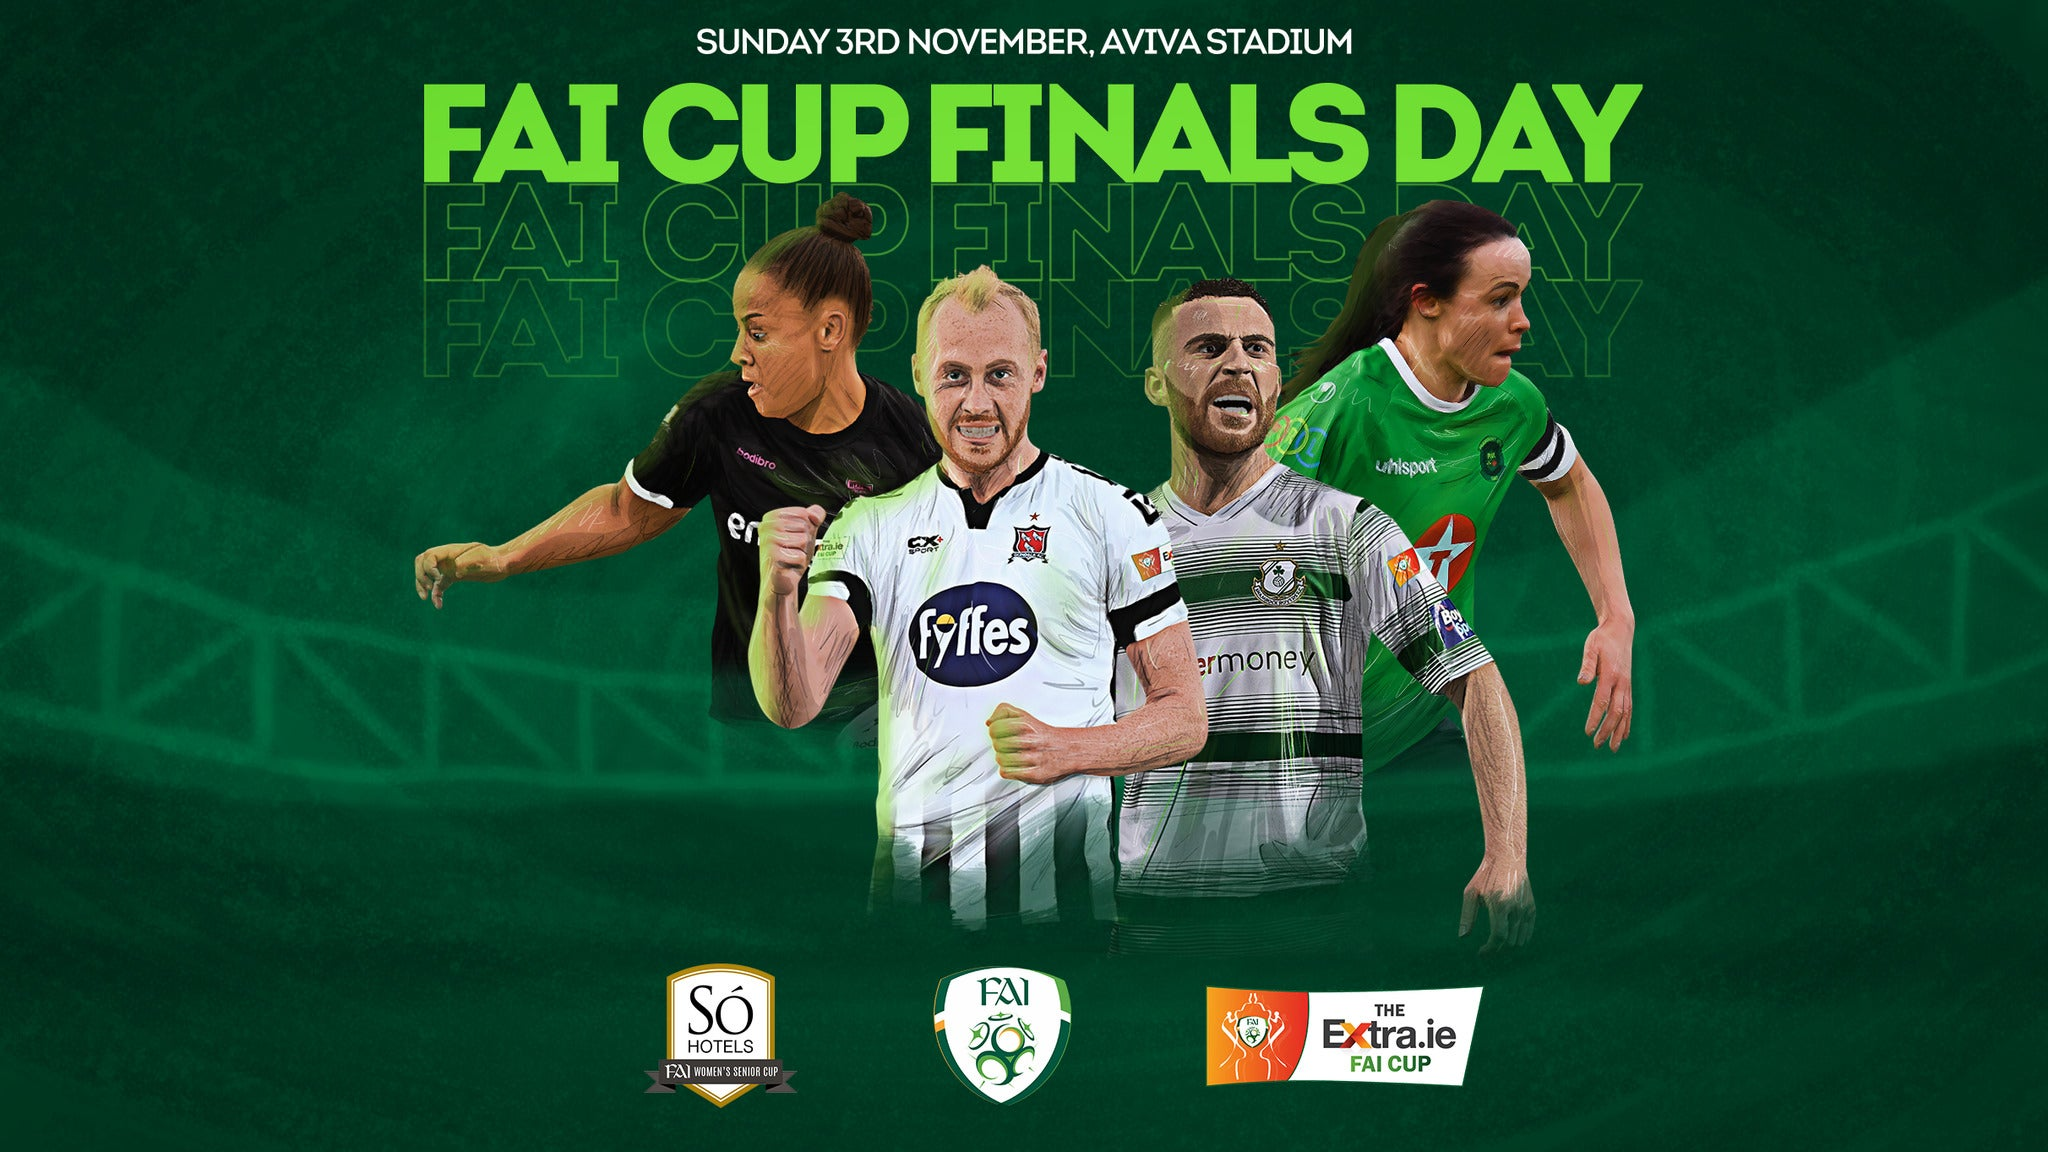 FAI Cup Finals Day - Dundalk/Shamrock Rovers & Peamount/Wexford Youths Seating Plan Aviva Stadium